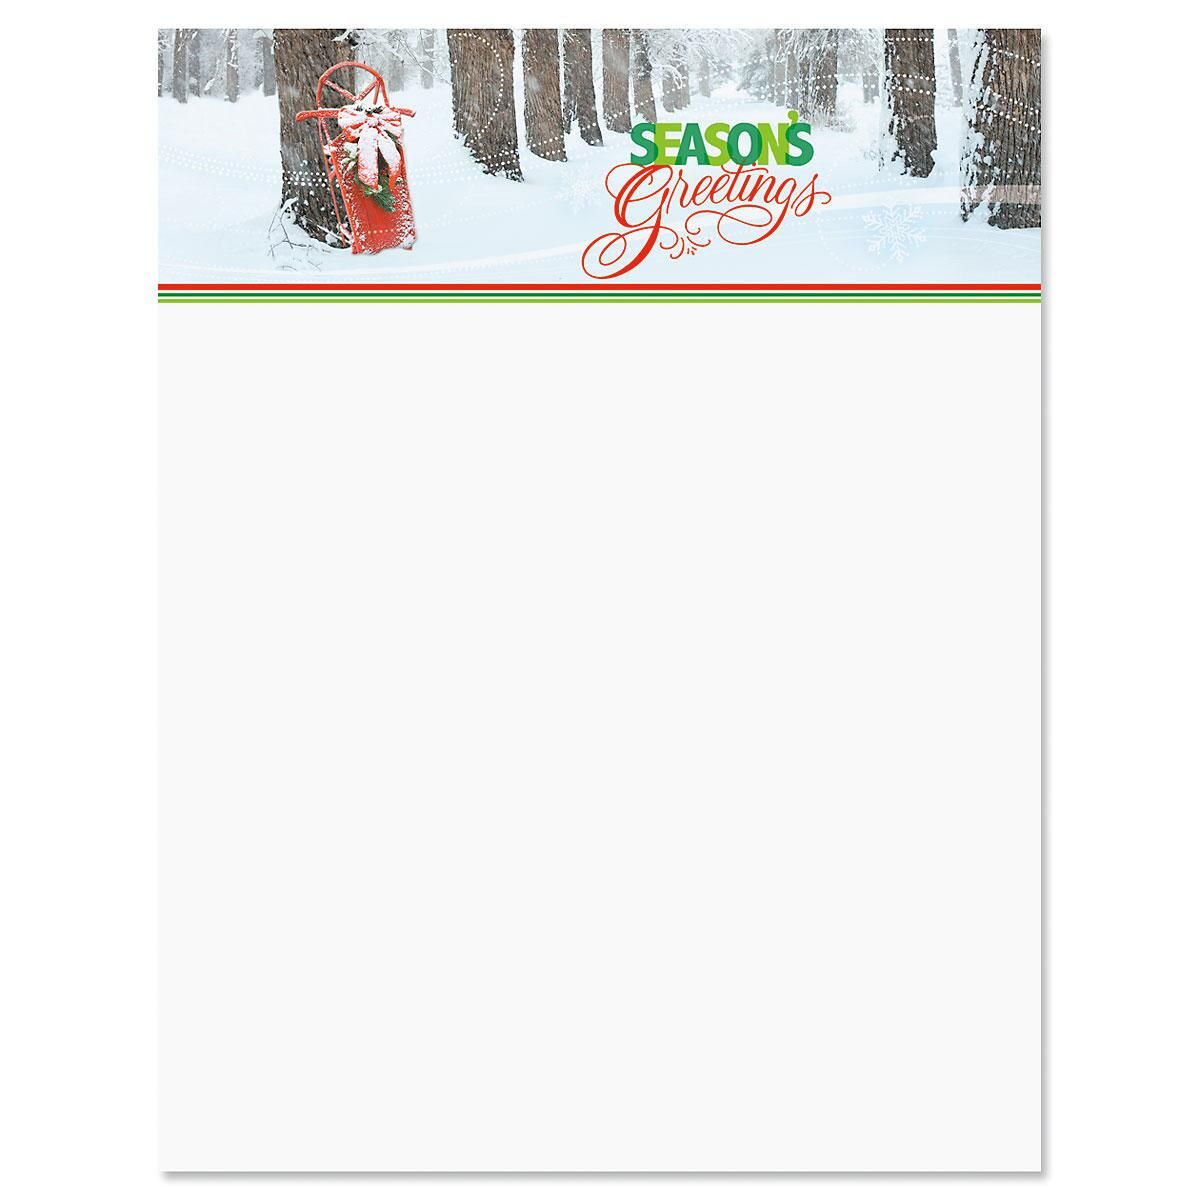 Sled in Trees Christmas Letter Papers